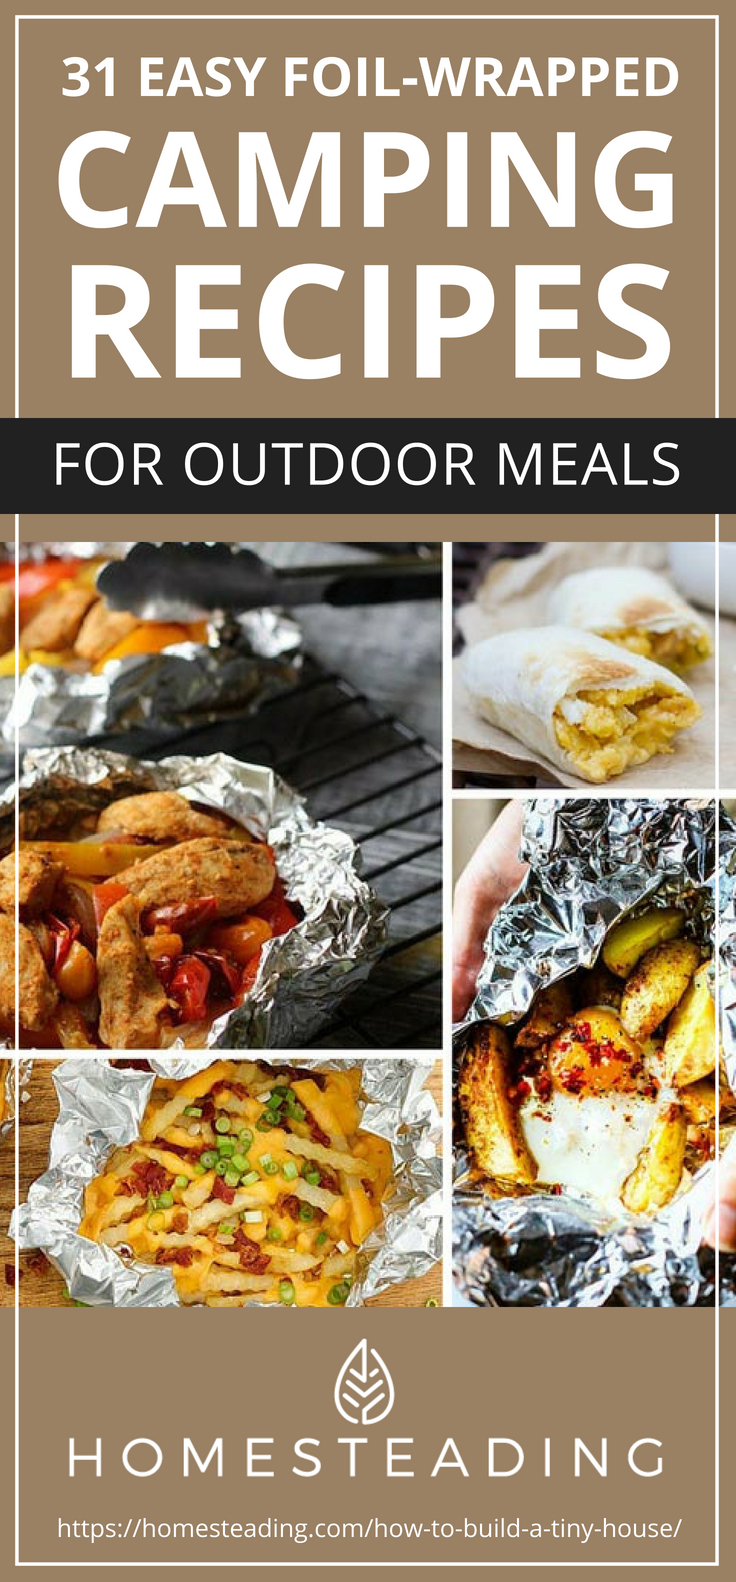 31 easy foil wrapped camping recipes for outdoor meals homesteading pinterest placard 31 easy foil wrapped camping recipes for outdoor meals forumfinder Gallery